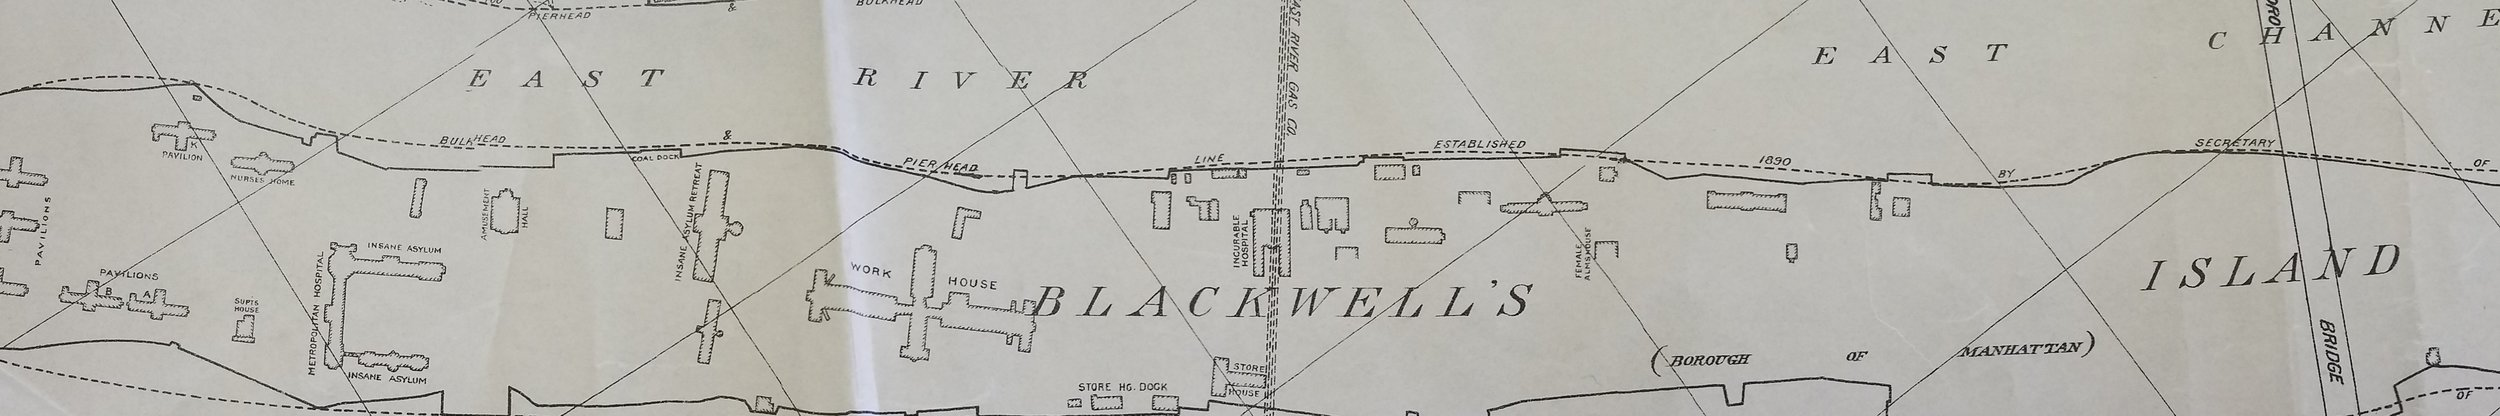 Untitled Map of Blackwell's Island and Queen's Waterfront, 1918. Department of Ports and Trade collection, NYC Municipal Archives.